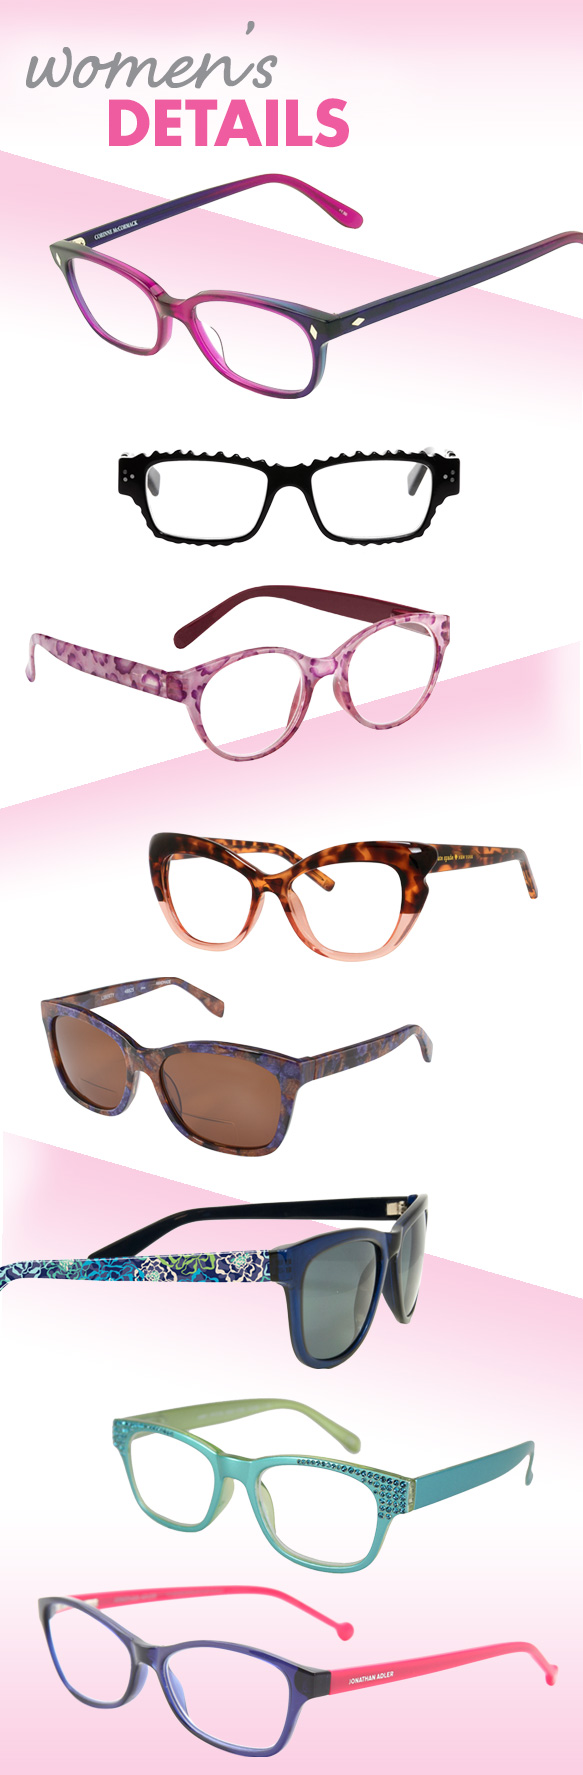 Corinne McCormack (Cyd), eyebobs (Gigabyte), I Heart Eyewear (Laney), Kate Spade New York (Alva), Scojo New York (Liberty Sun), Vera Bradley (Estelle), Jimmy Crystal New York (JCR362), Jonathan Adler (JA800)